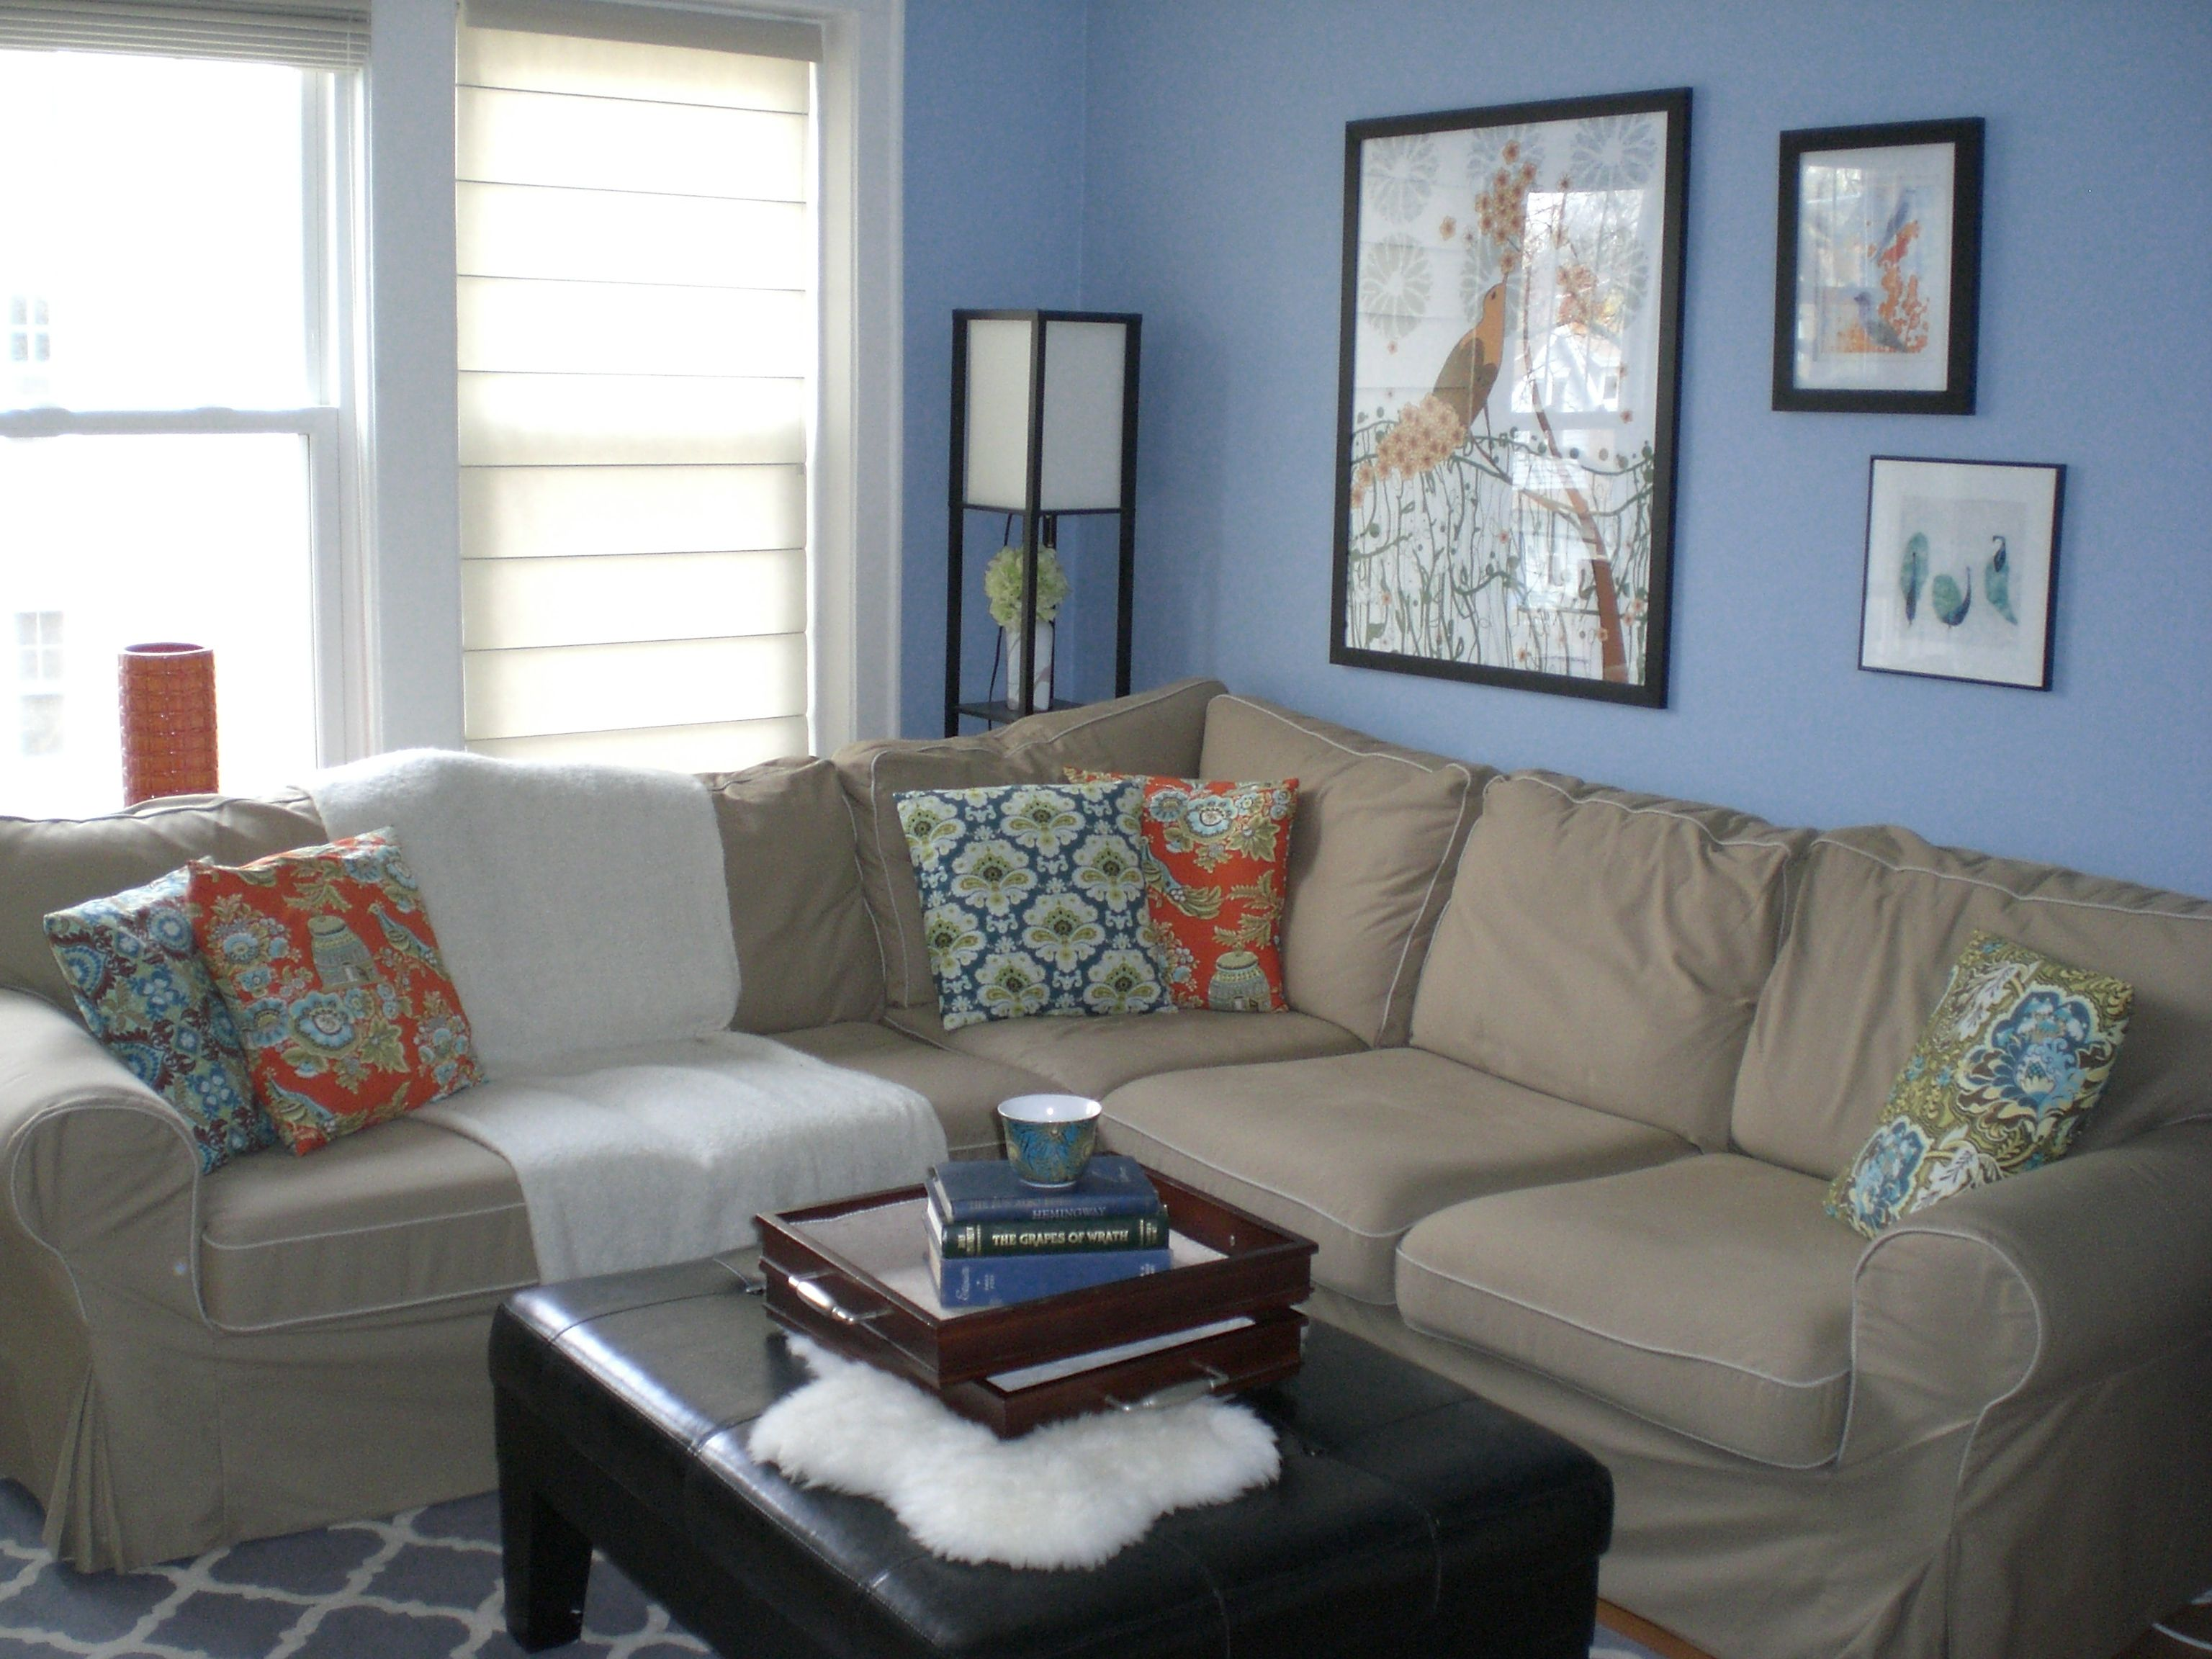 Light blue paint colors for living room xrkotdh living for Living room paint ideas with grey furniture